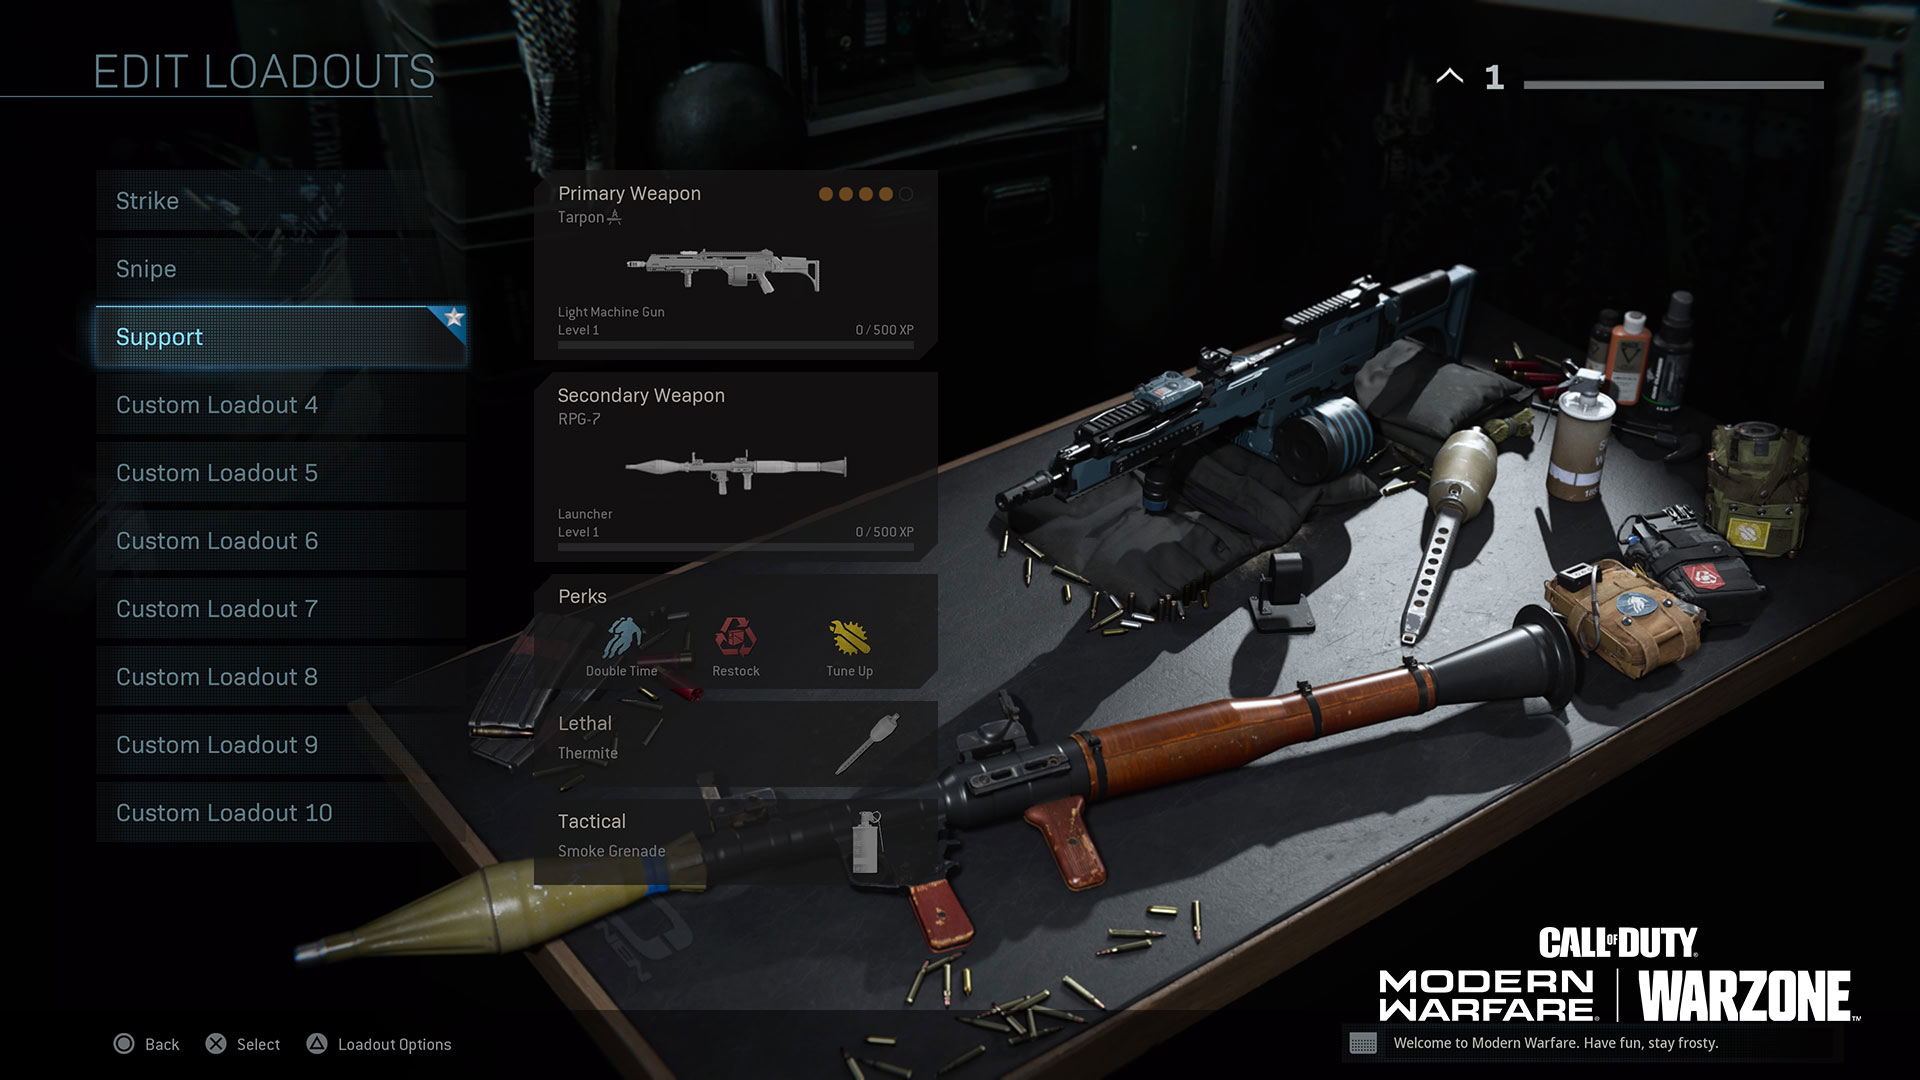 This loadout shines in a supporting role